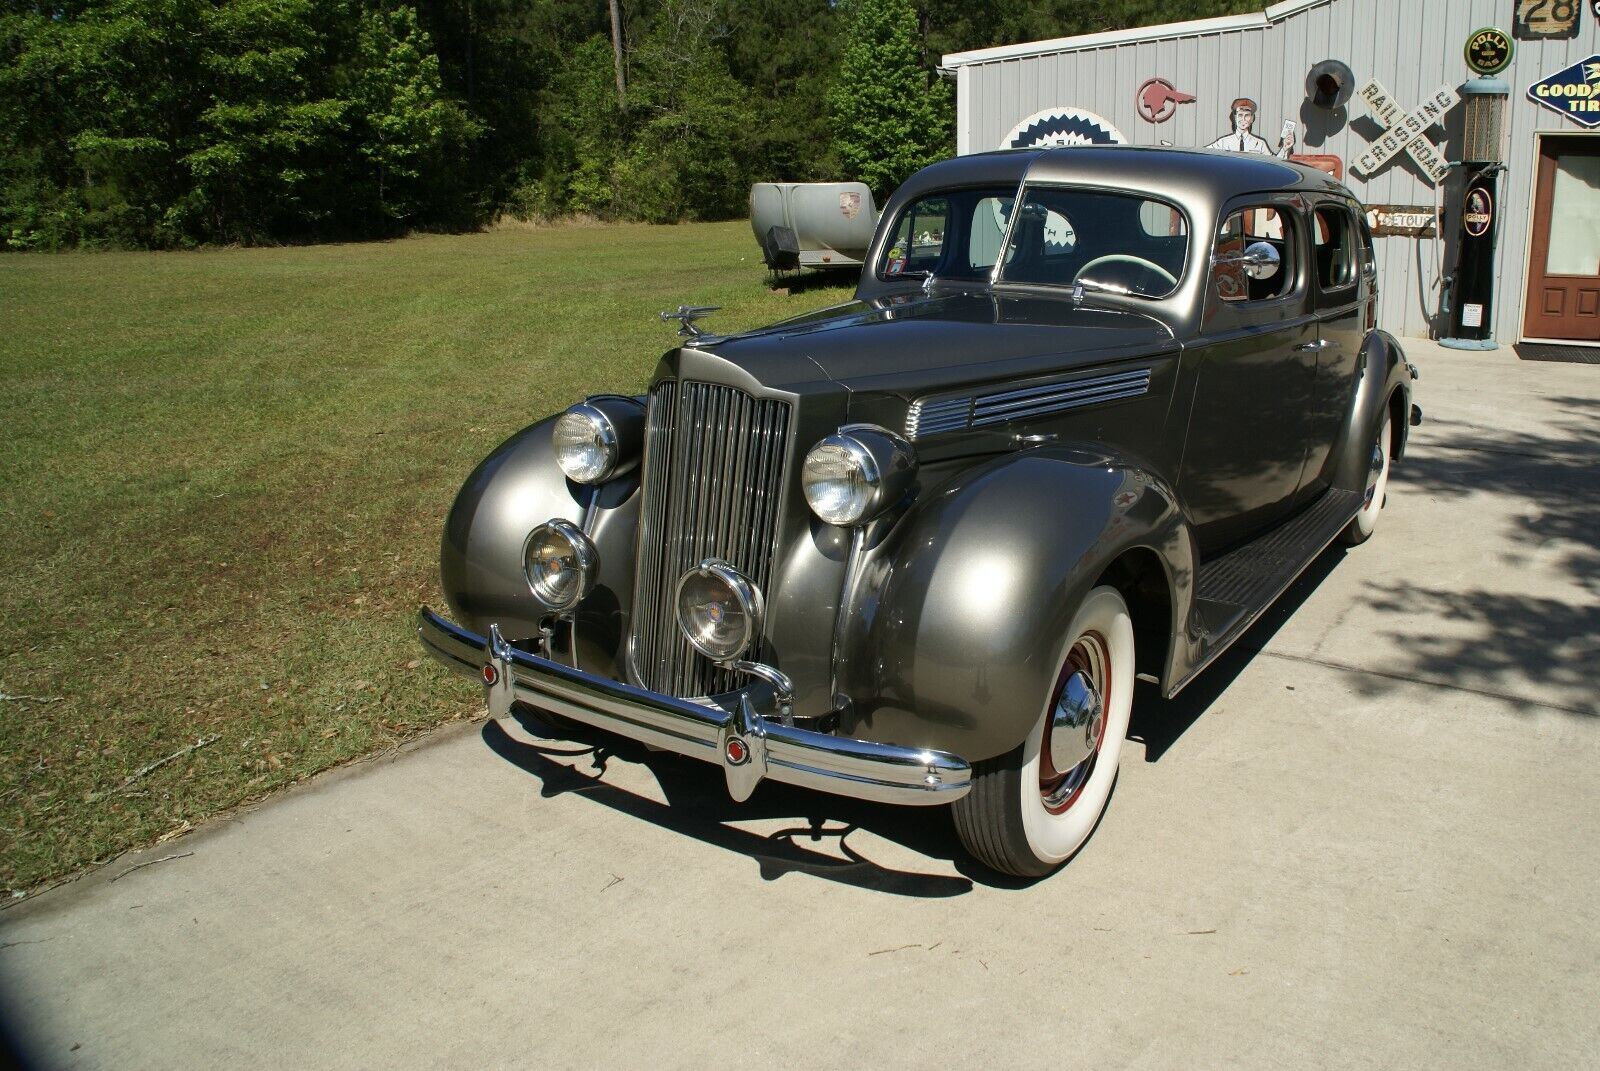 1938 Packard Deluxe Eight  1938 PACKARD SEDAN VINTAGE COLLECTIBLE FLAWLESS LKIE CADILLAC no reserve